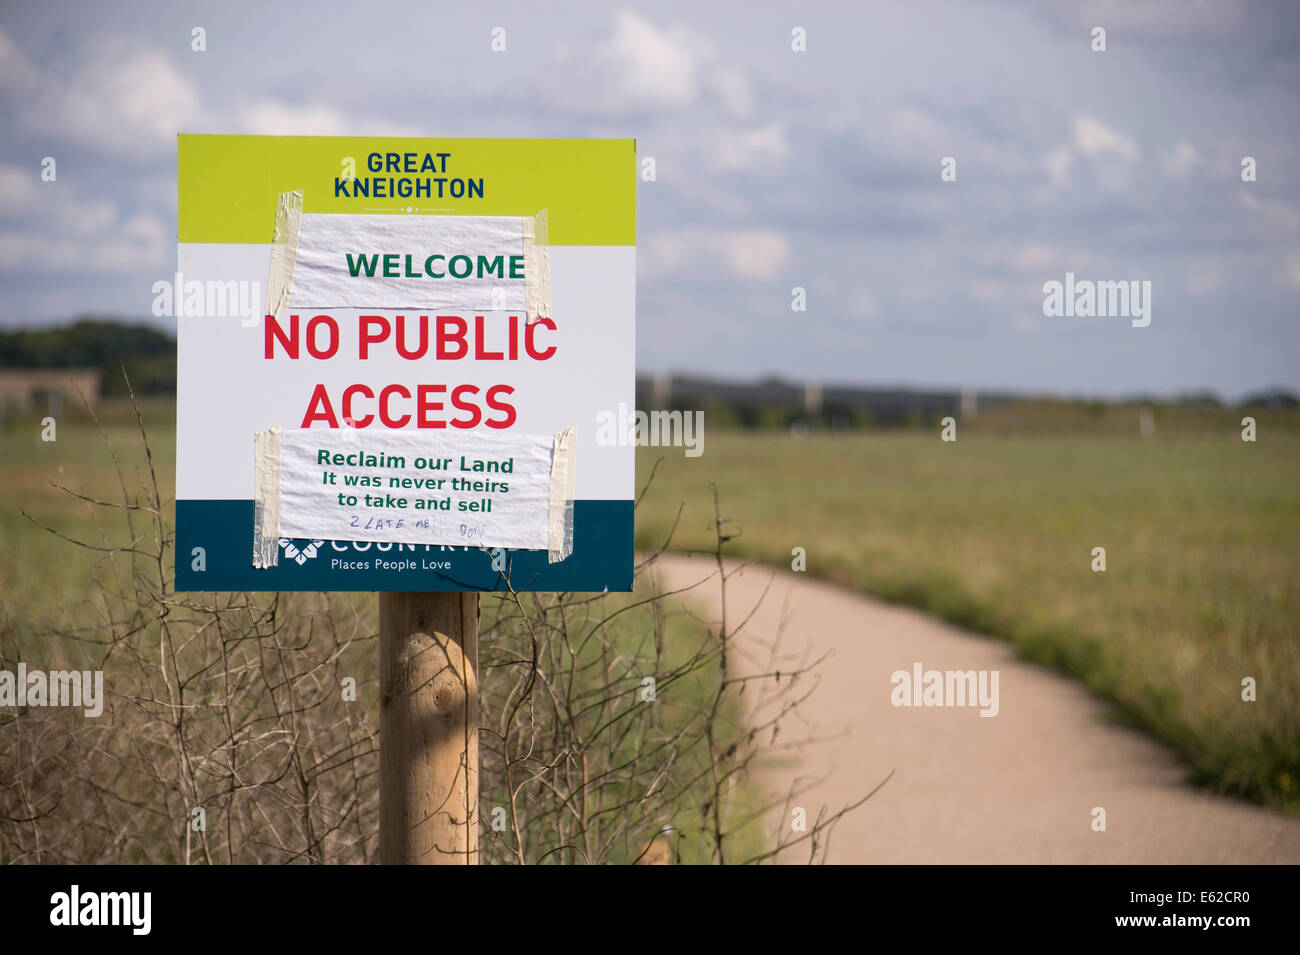 sign at Great Kneighton Cambridge indicating no public access and reply from anon member of the publi - Stock Image